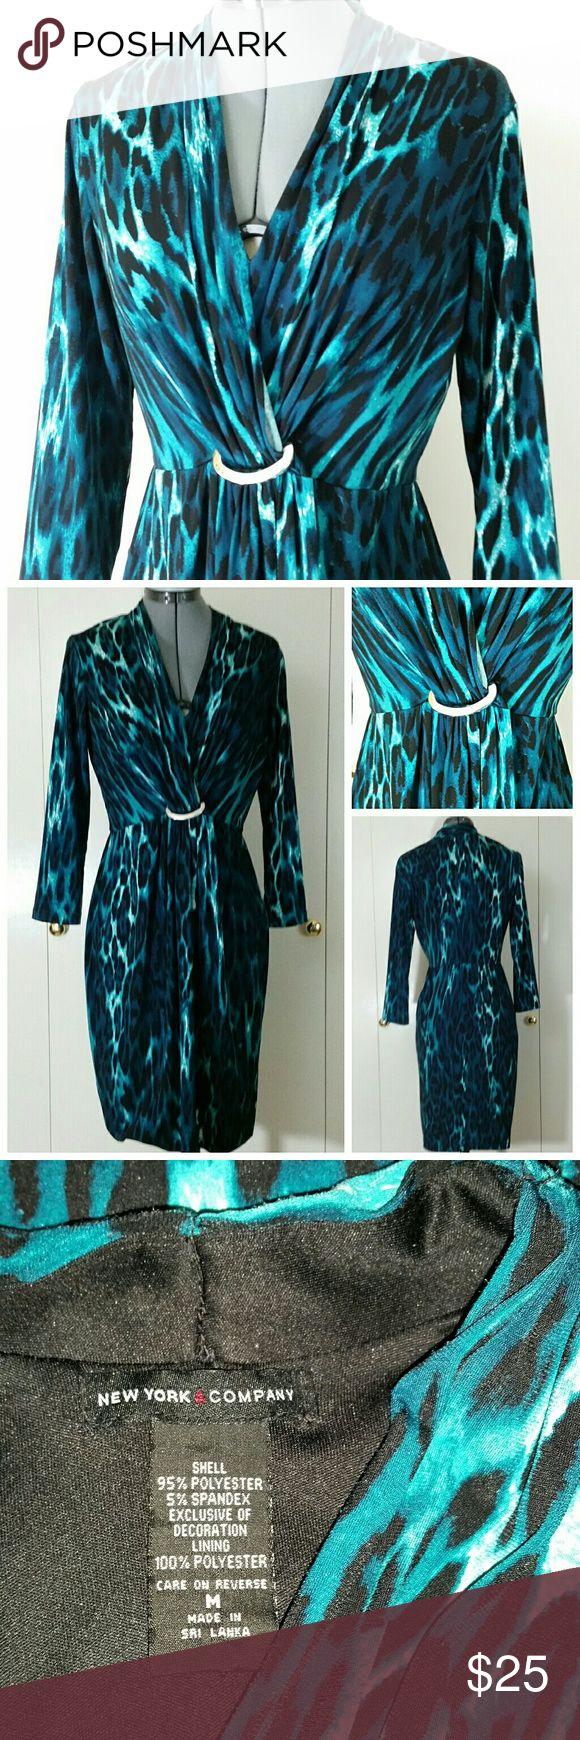 "NEW YORK &COMPANY Fake Wrap Dress NEW YORK & COMPANY Womens Sz. M Animal Print Dress  Gently used, minor flaw see last picture, overall still in good condition.  Measurements laying flat: Armpit to armpit: 17"" Waist: 14"" Length: 36.5"" Sleeve: 19""  Thanks,  Item#DD1 New York & Company Dresses"